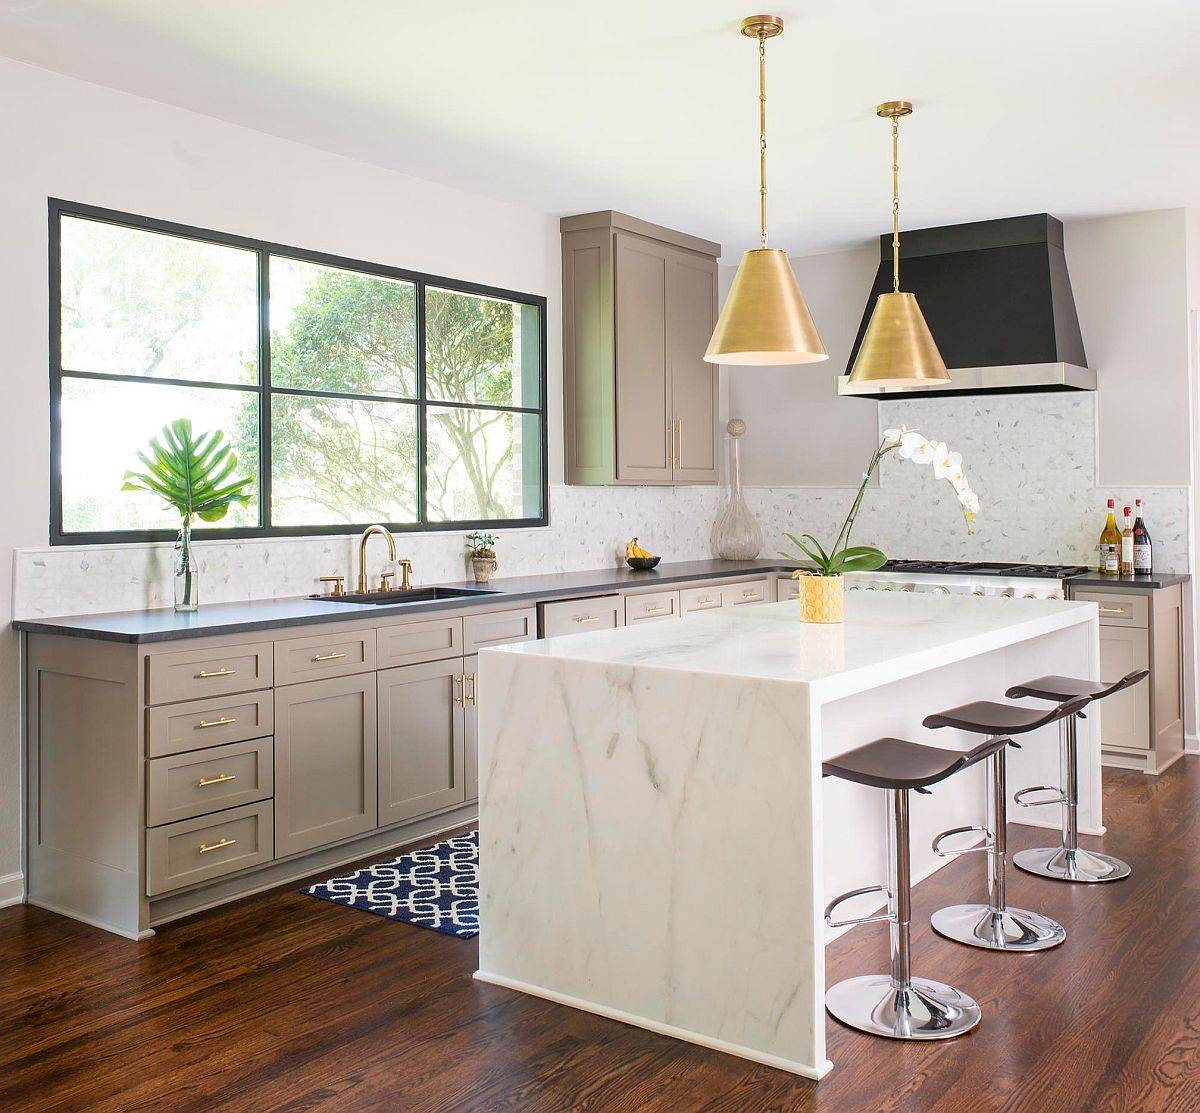 Dazzling-pendants-add-golden-metallic-glint-to-this-kitchen-in-neutral-hues-43299